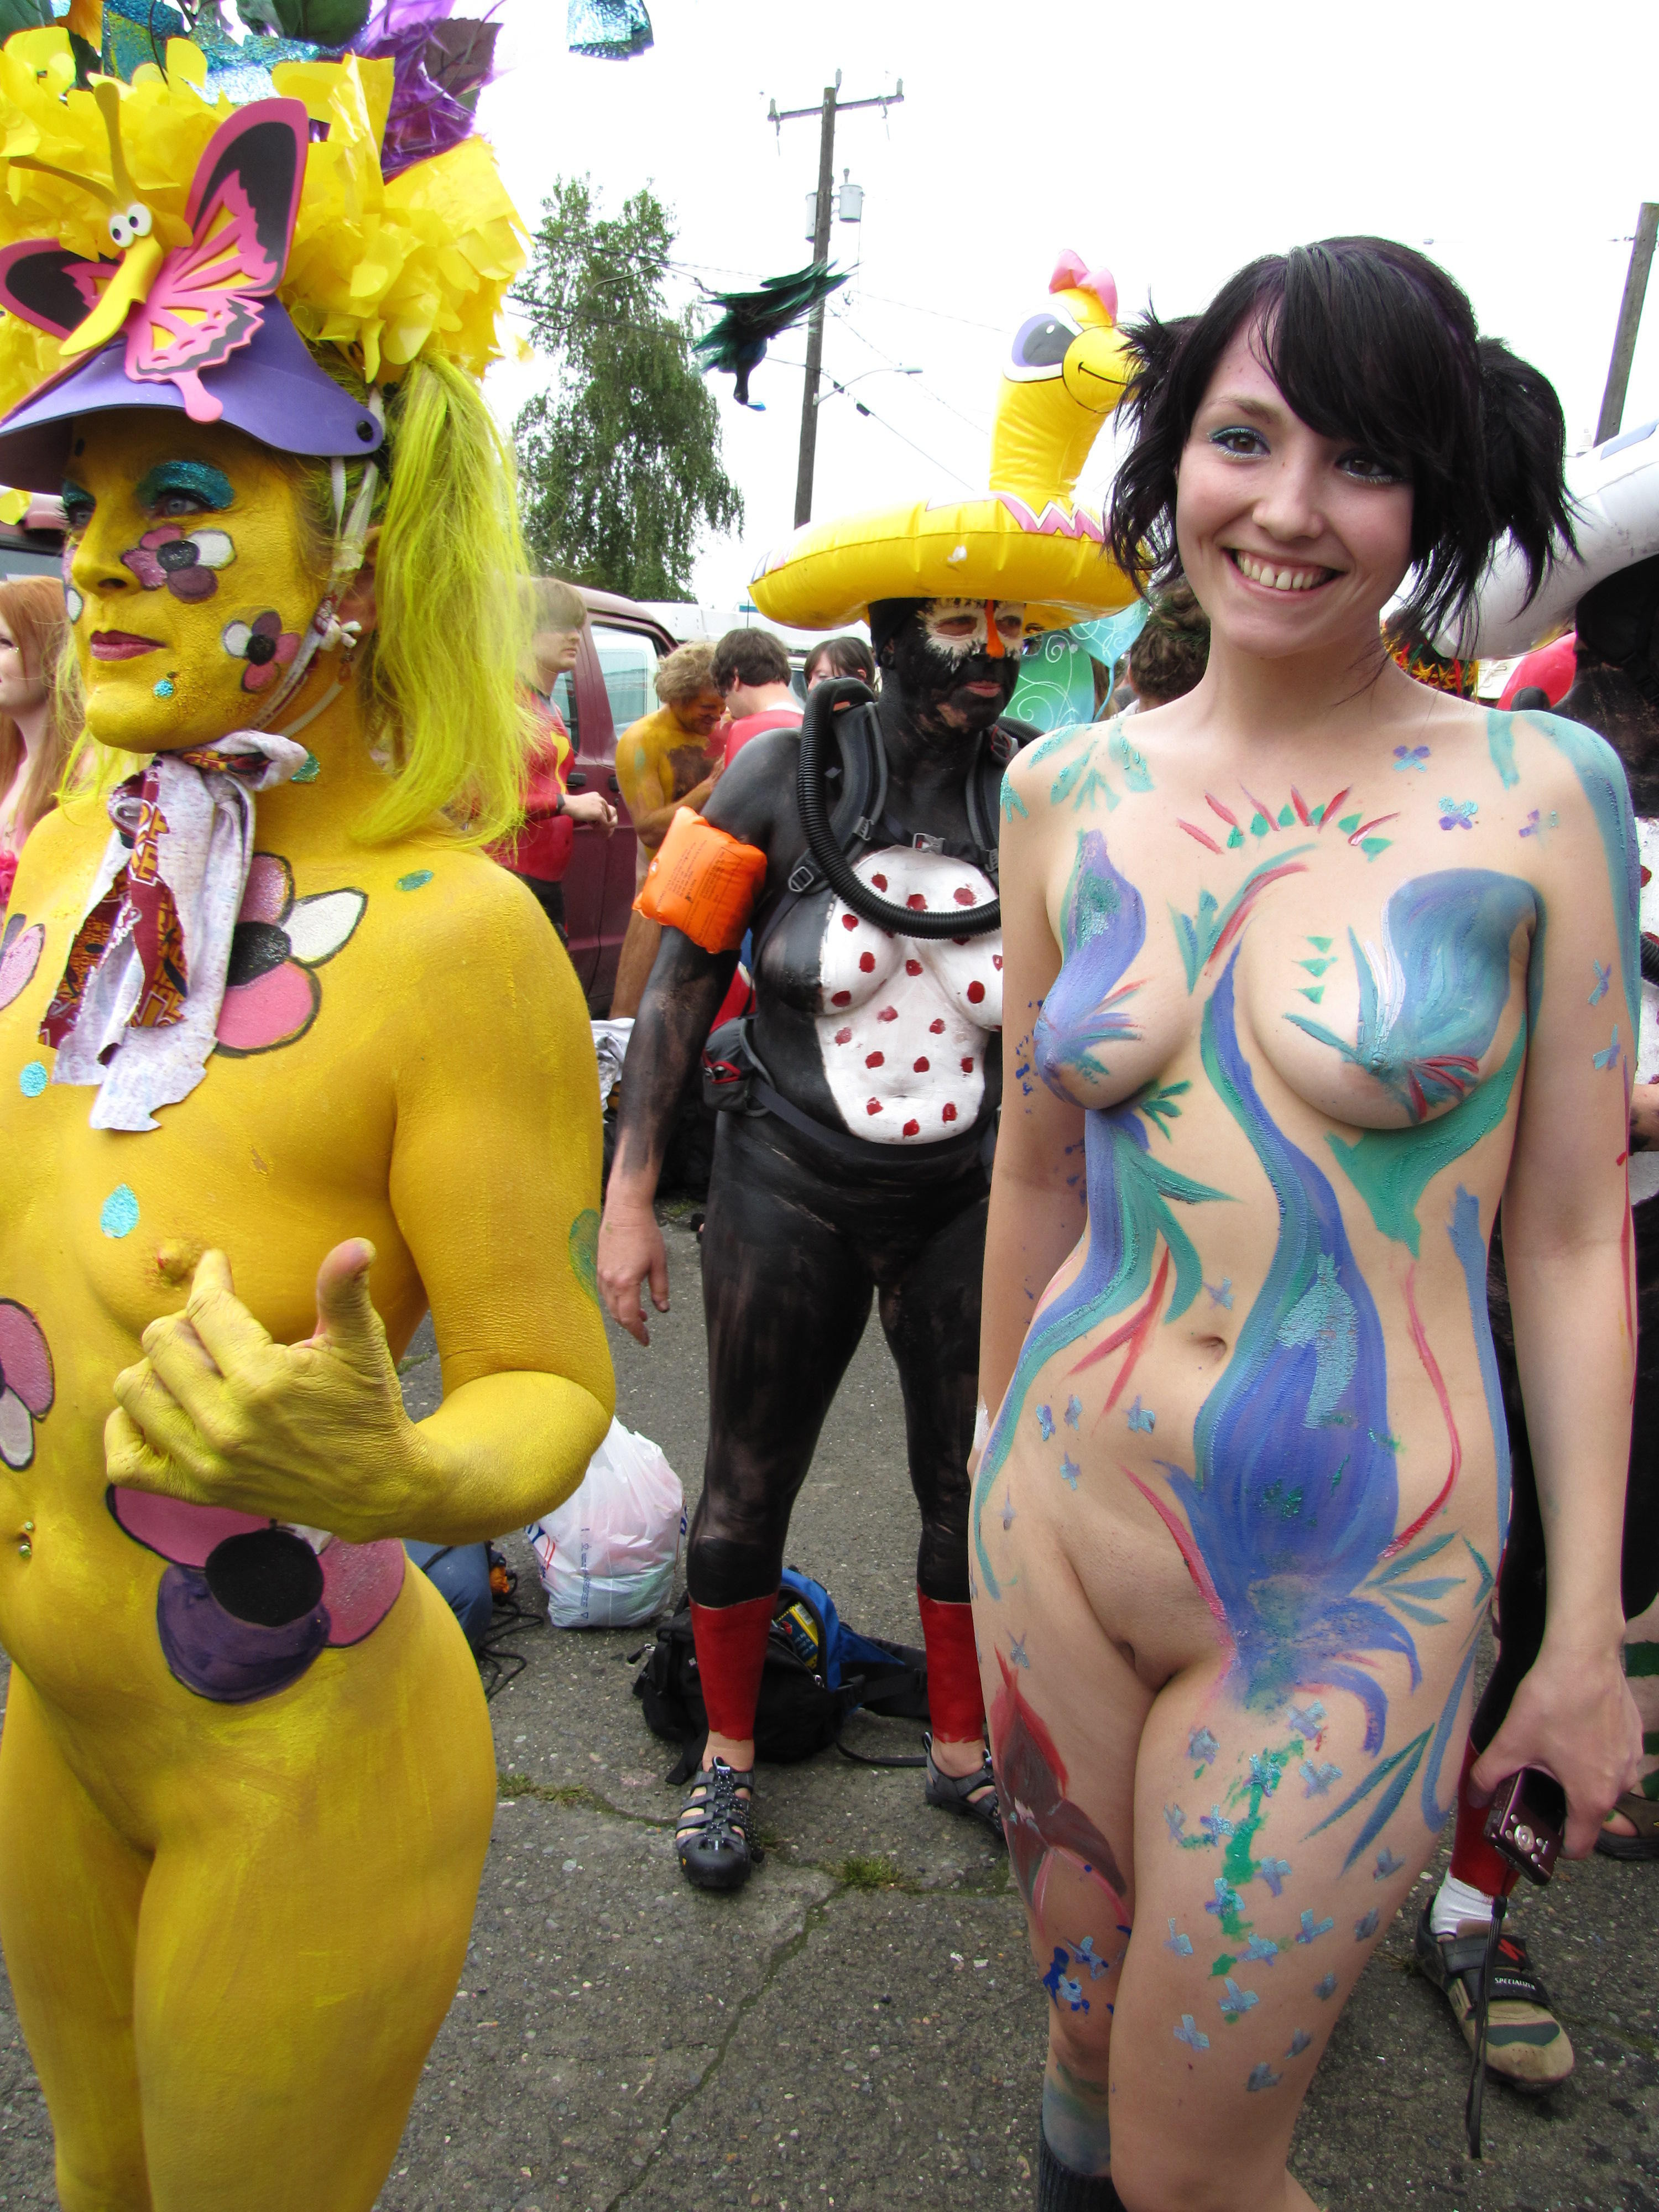 naked-cosplay-in-public-bade-nude